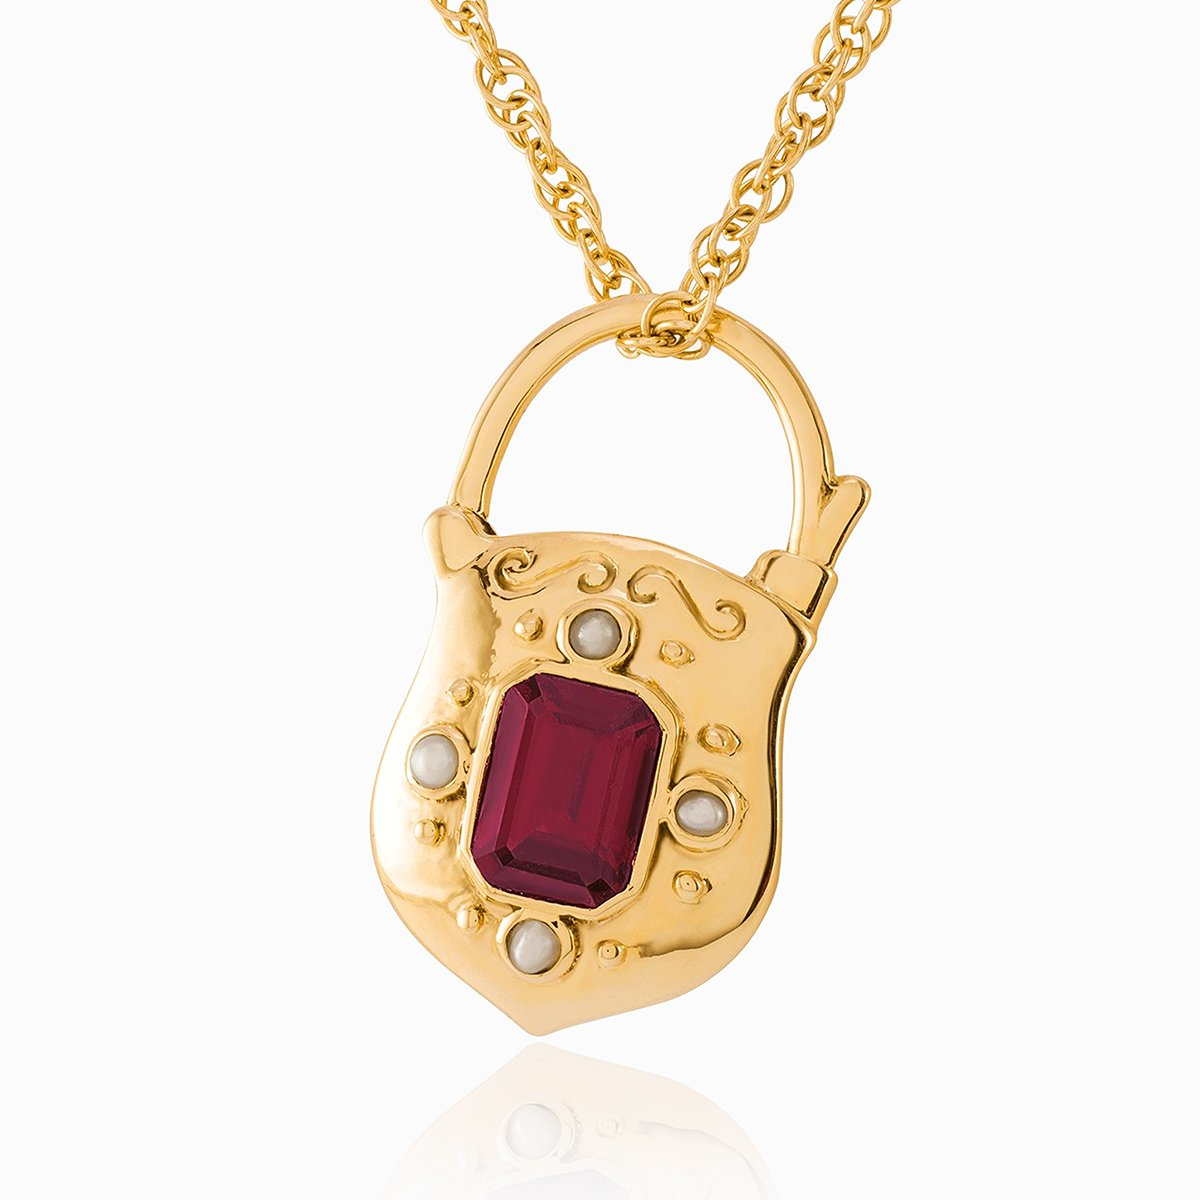 Product title: Vintage Padlock Garnet Locket, product type: Locket